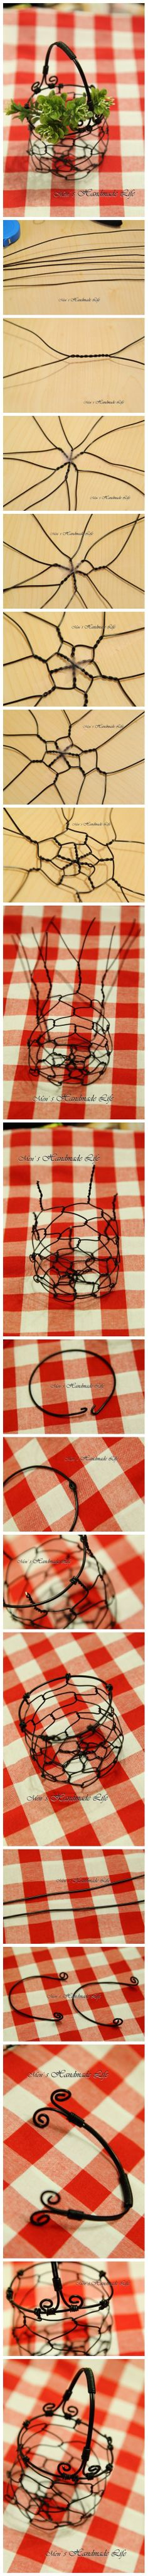 DIY a wire basket for a recicled glass jar (with candels, wild flowers, sweets in a party, ... )